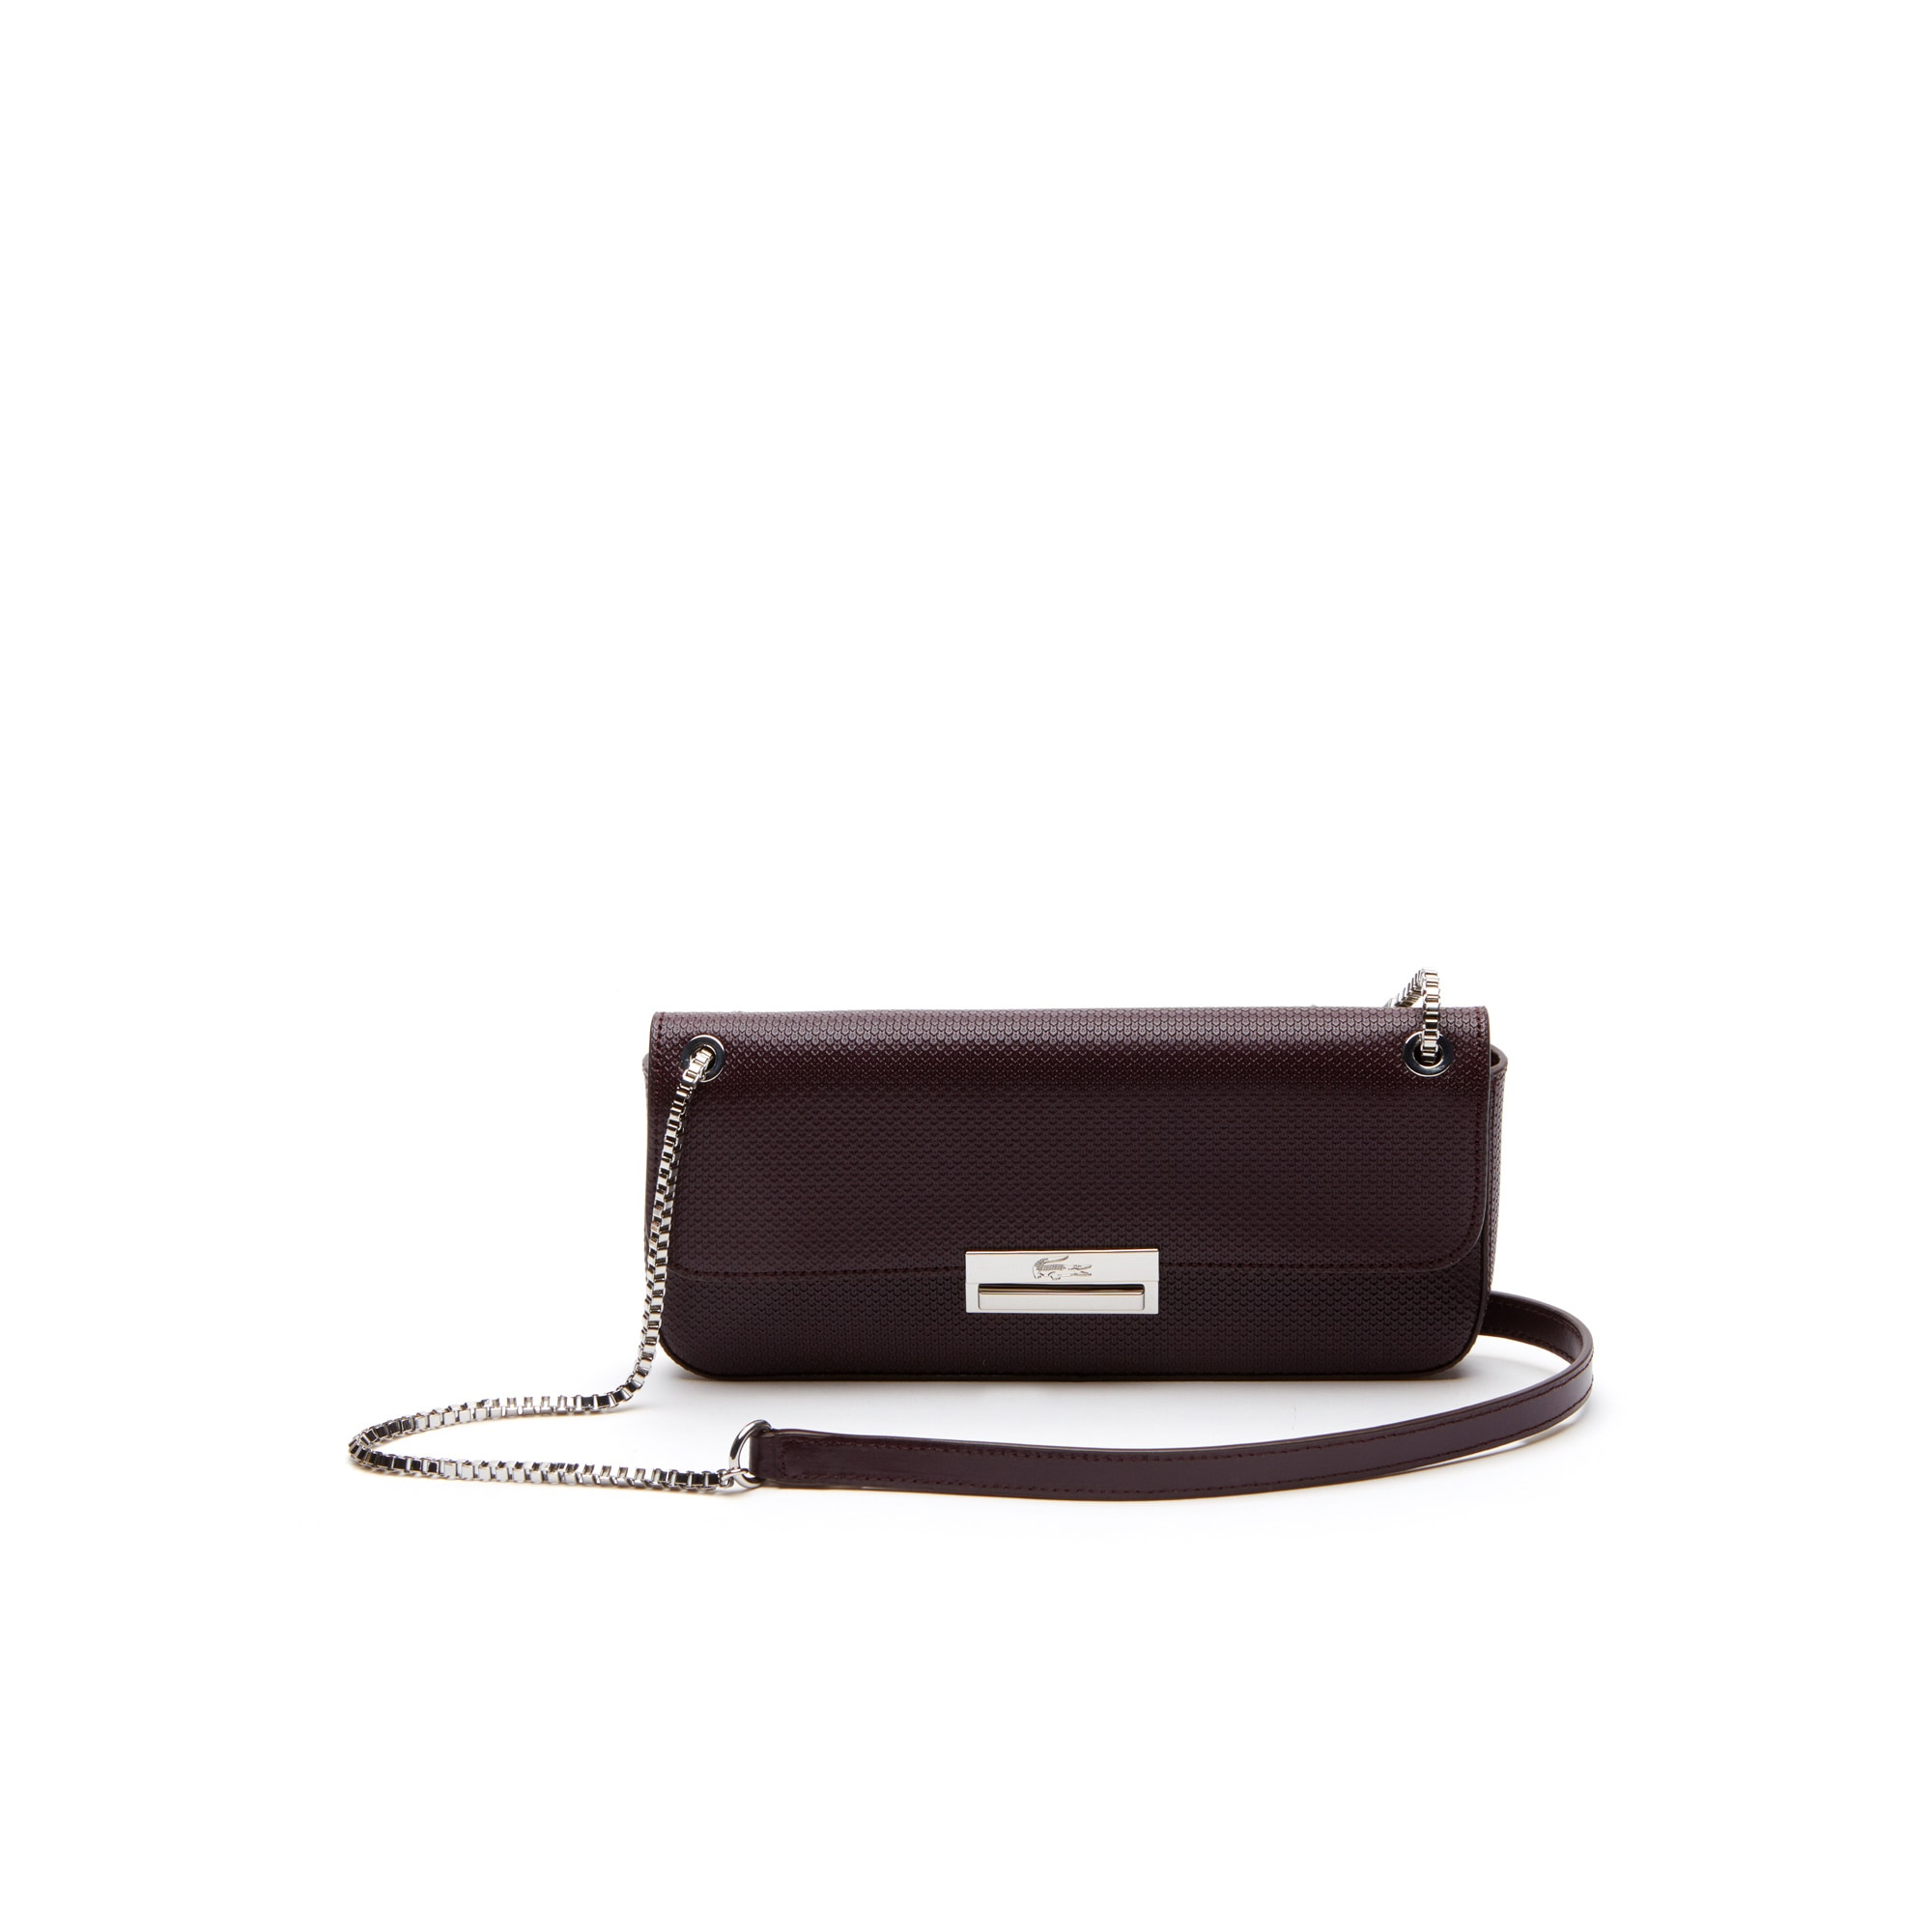 Women's Chantaco Christmas Piqué Leather Flap Shoulder Bag